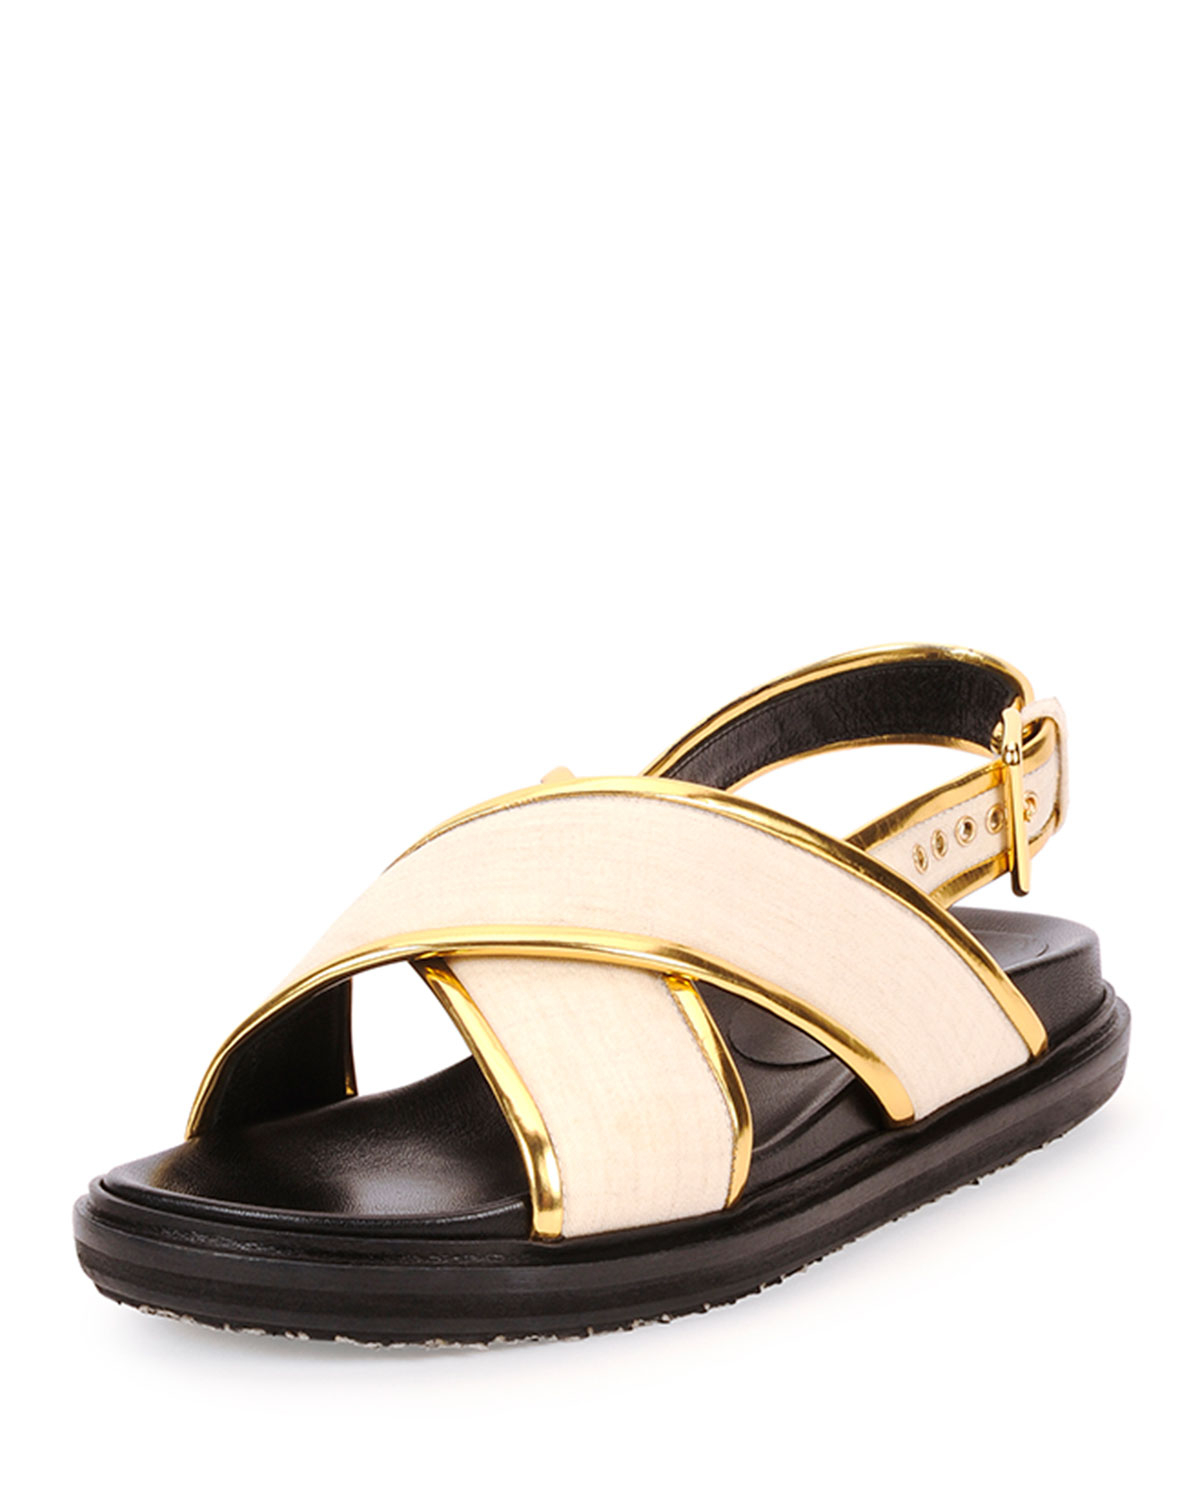 clearance online ebay Marni Woven Lace-Up Sandals buy cheap collections outlet genuine geniue stockist online marketable online JLi5a